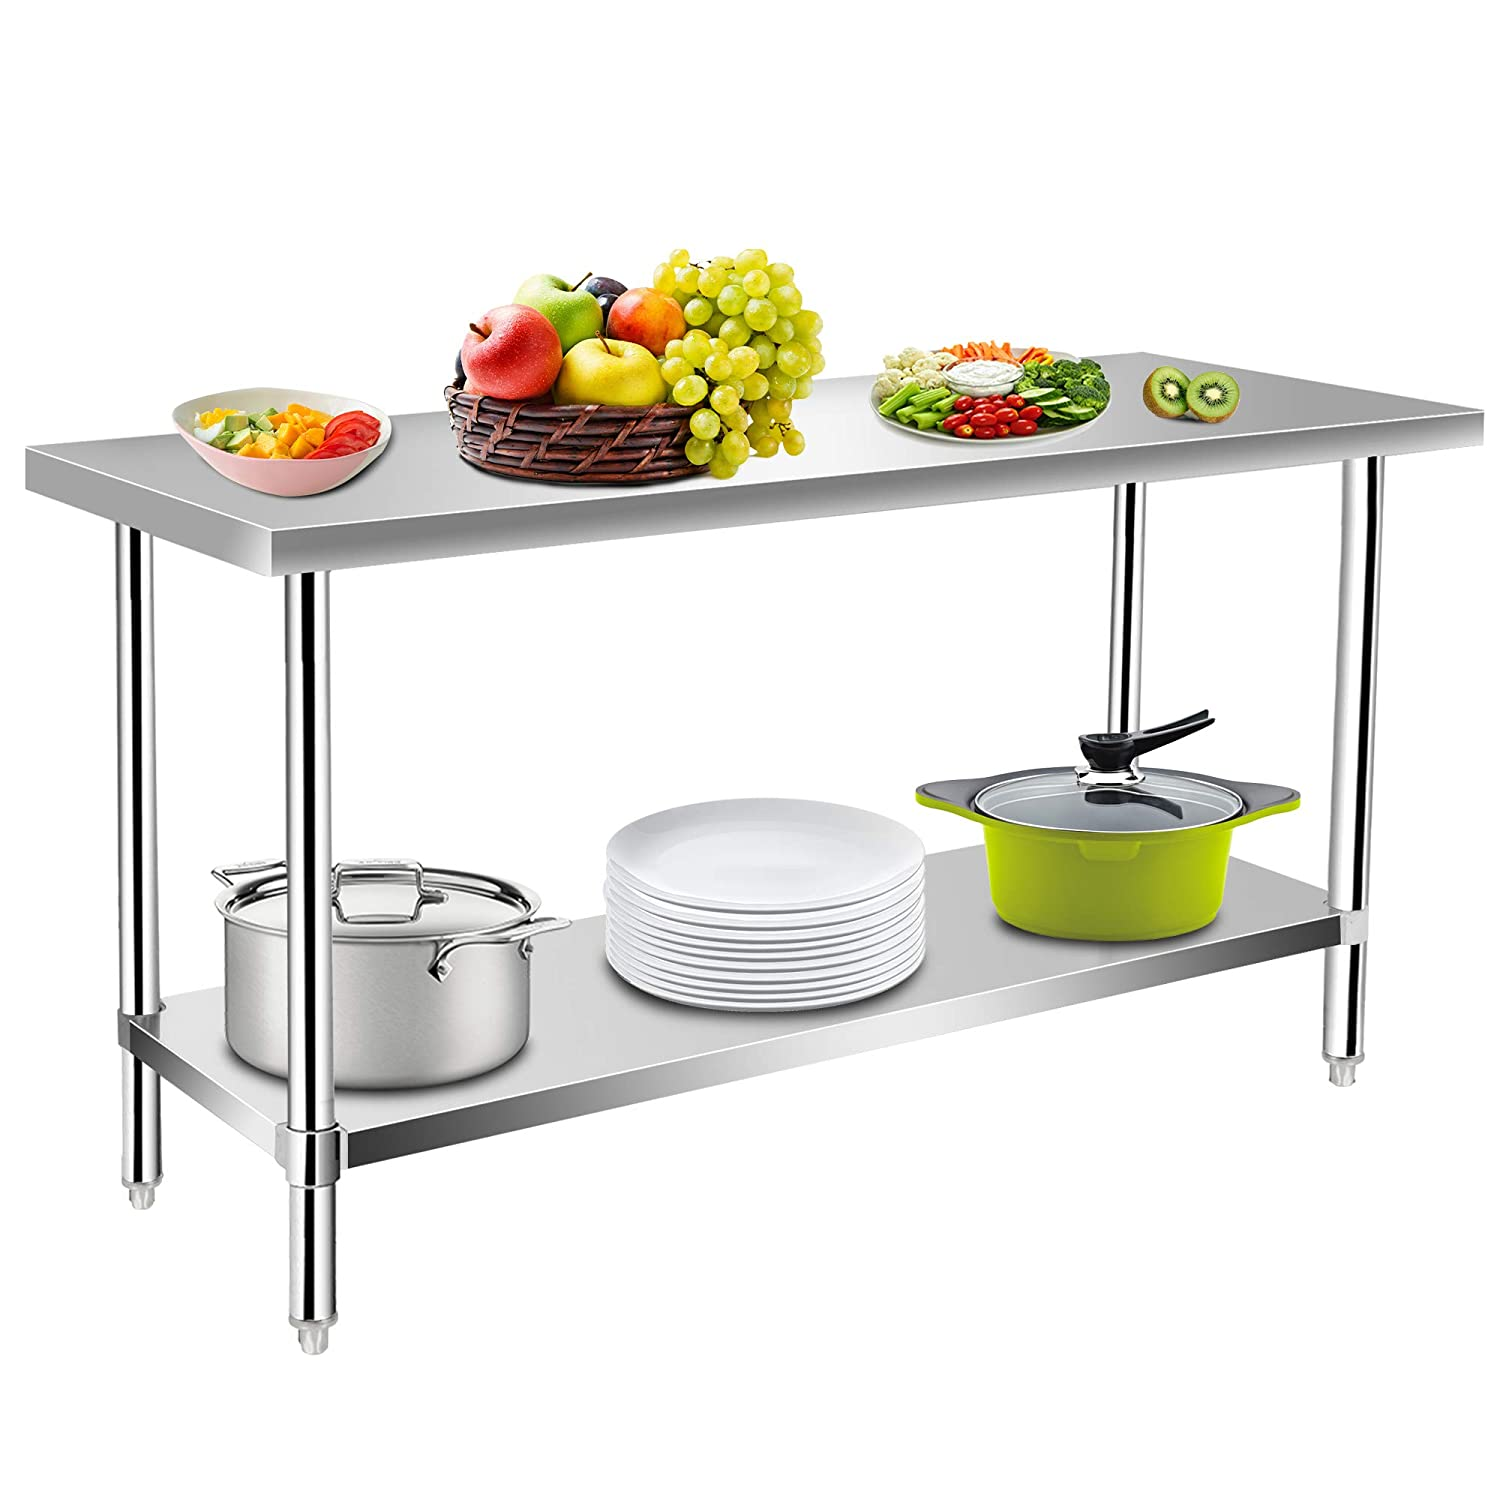 Weekly update Commercial Kitchen Prep Work Table Food cheap Stainless Steel KITMA